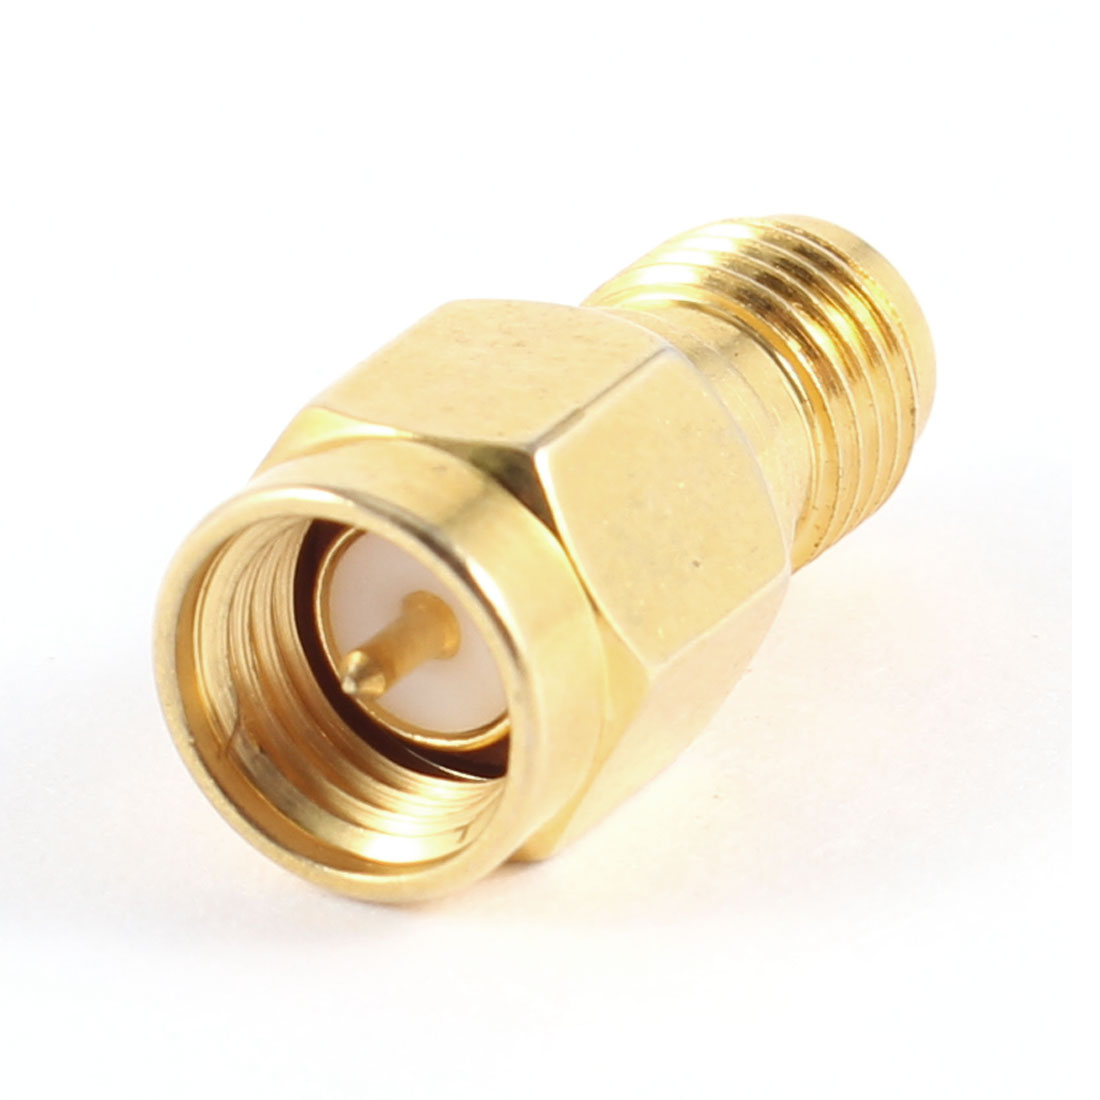 Antenna Connected Equipment RP-SMA Female to Male Connector Gold Tone